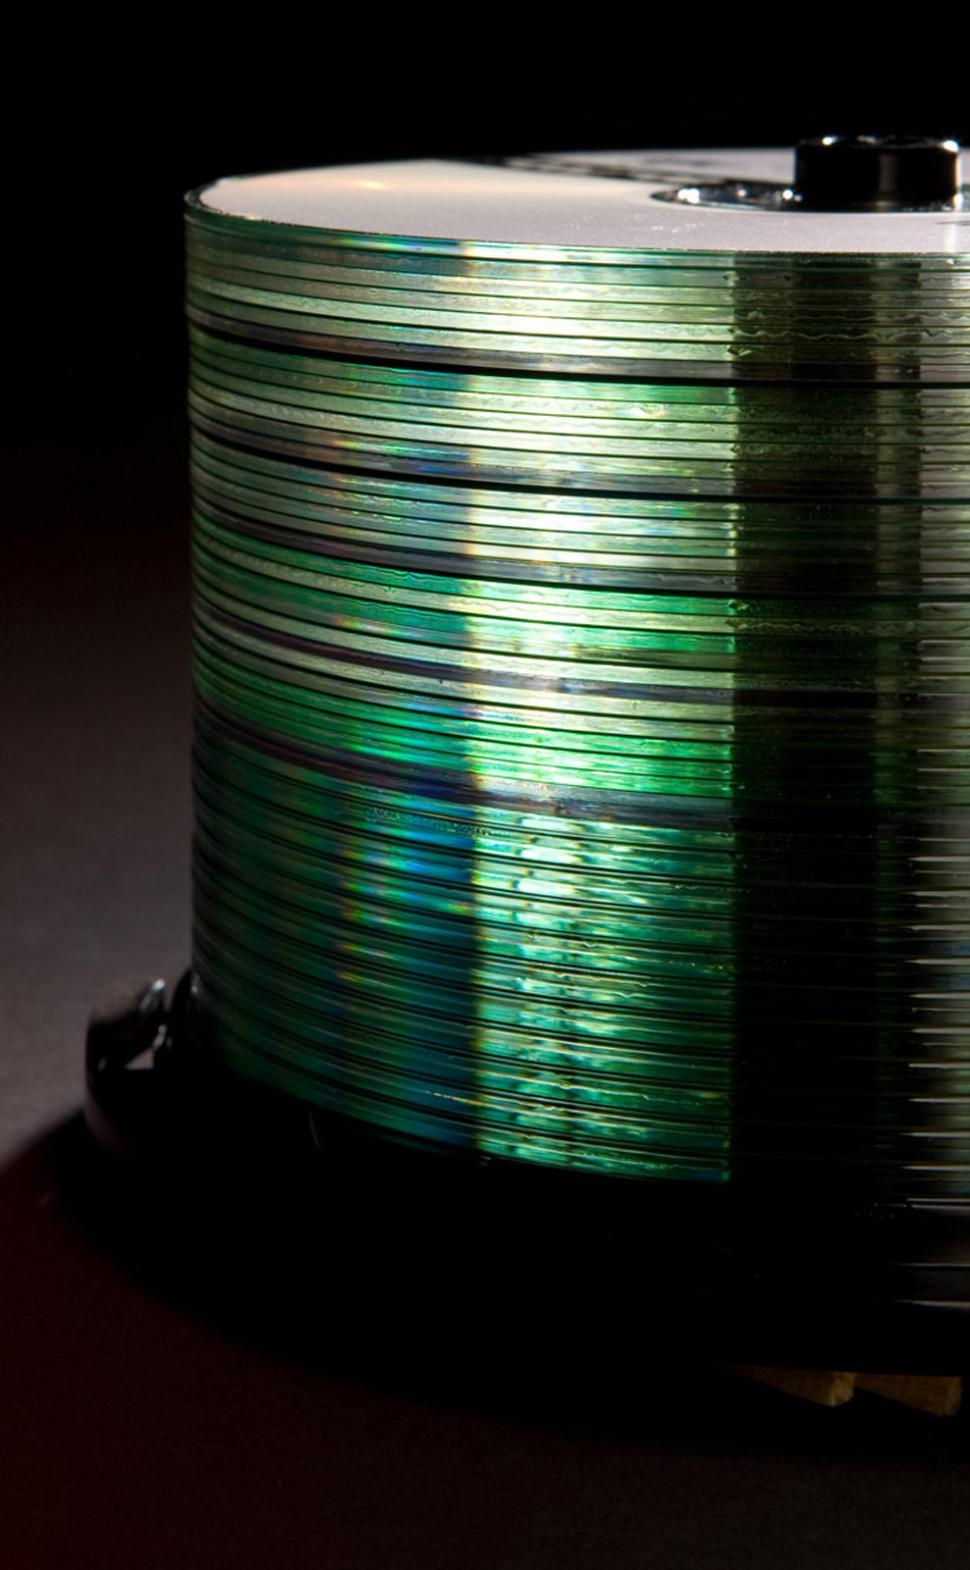 Download Free Stock HD Photo of CD Stacks Online